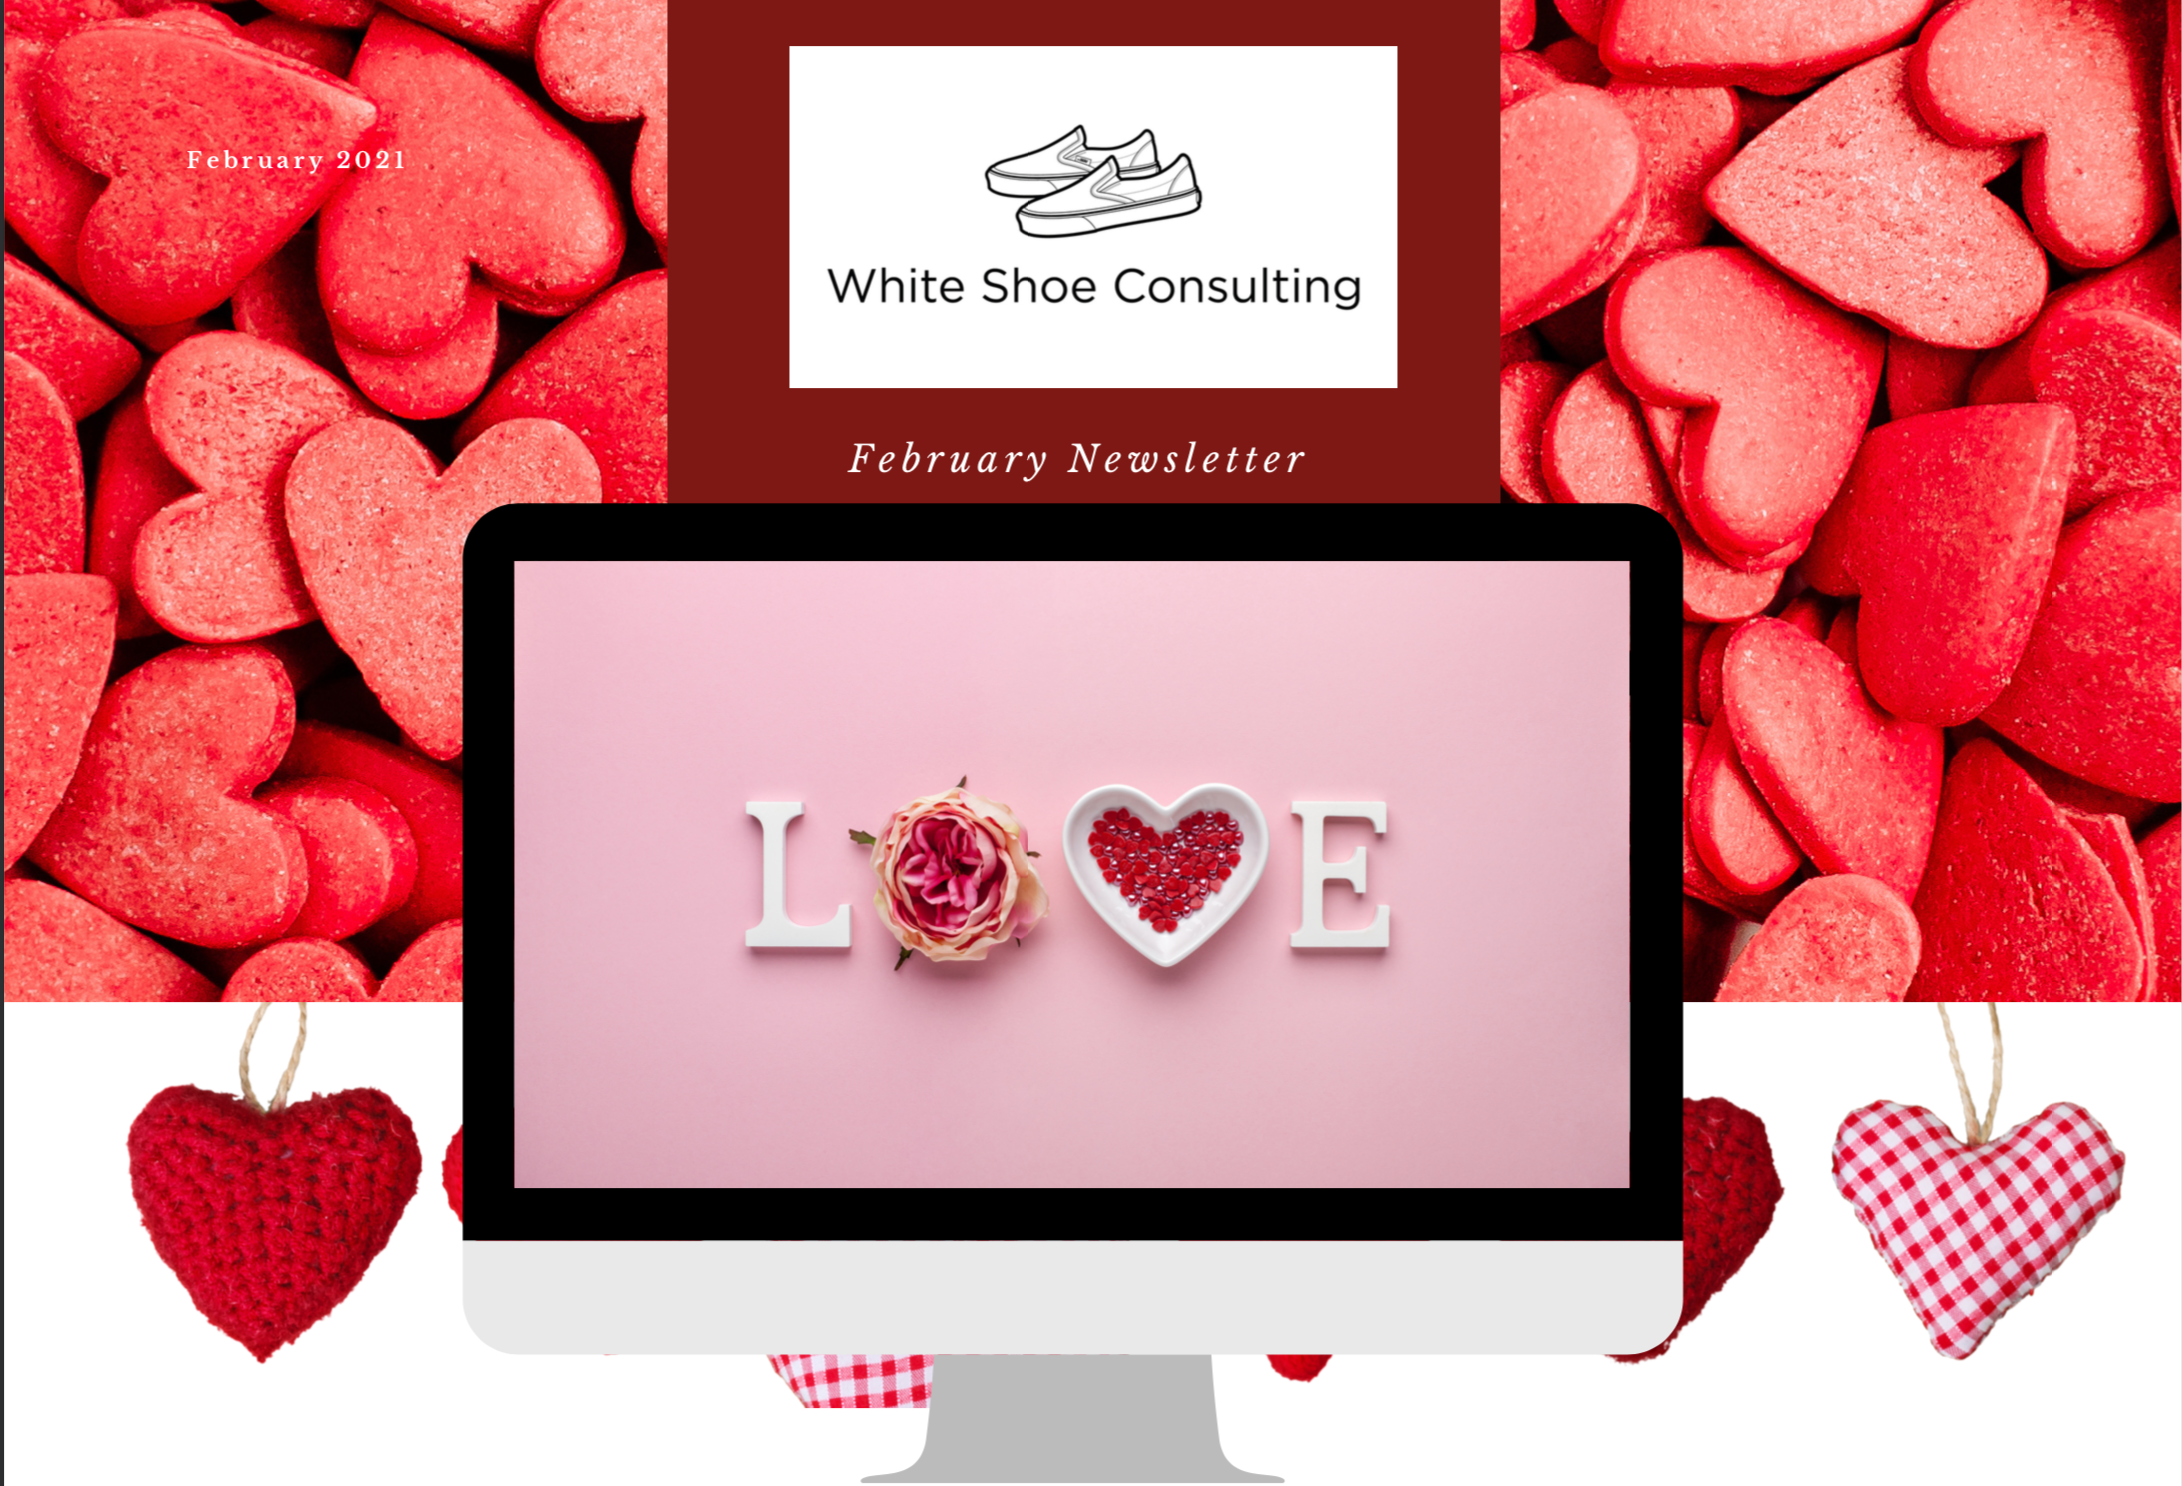 Valentine's Day Styled Image with a big LOVE message on a computer screen and heart candies all over to introduce the February Newsletter.